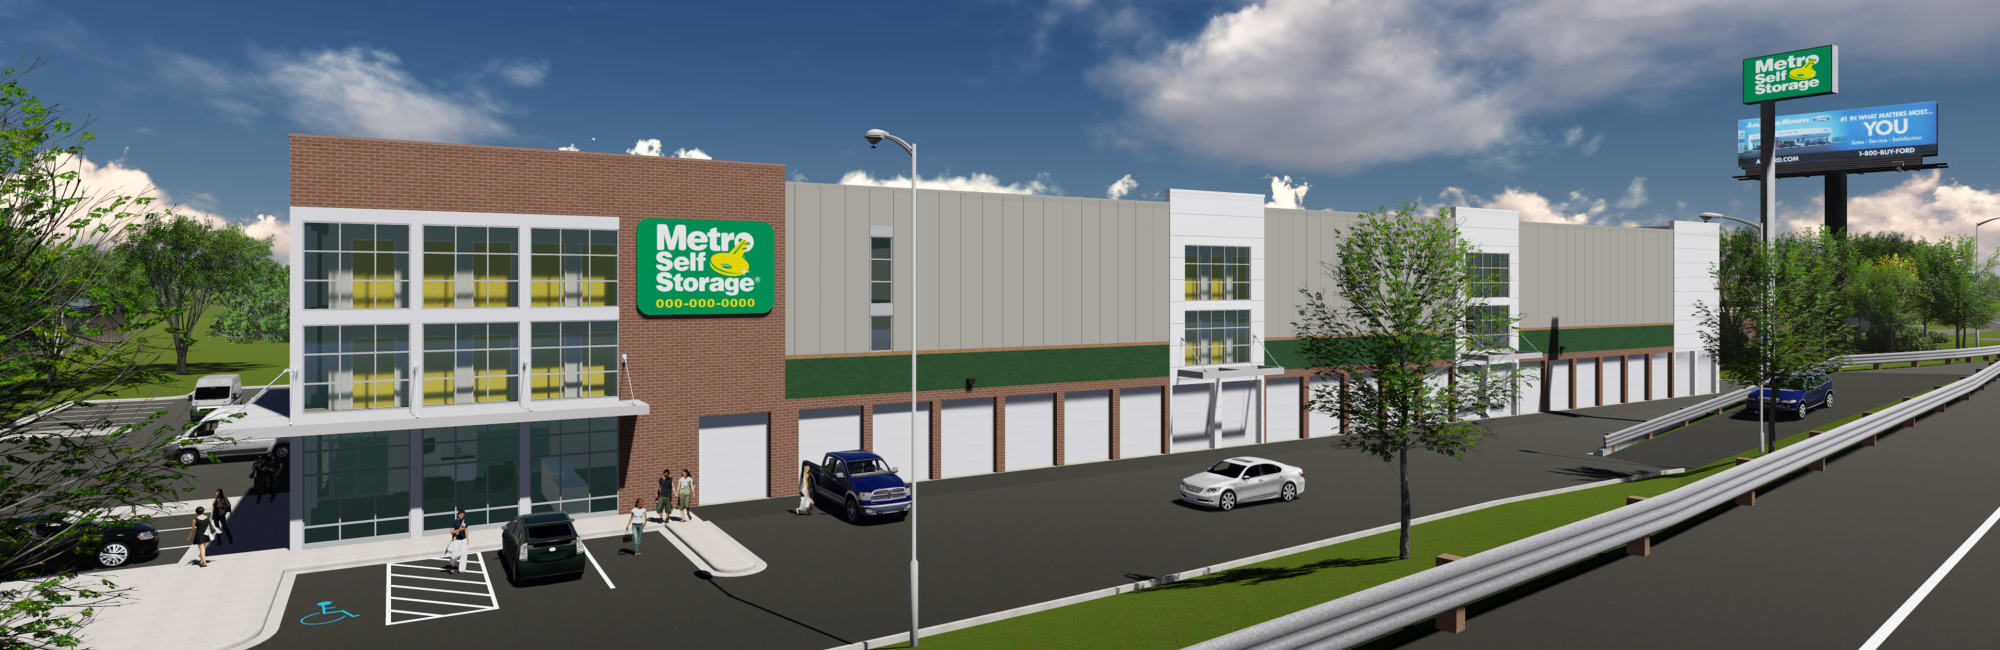 Metro Self Storage in Wood-Ridge, New Jersey